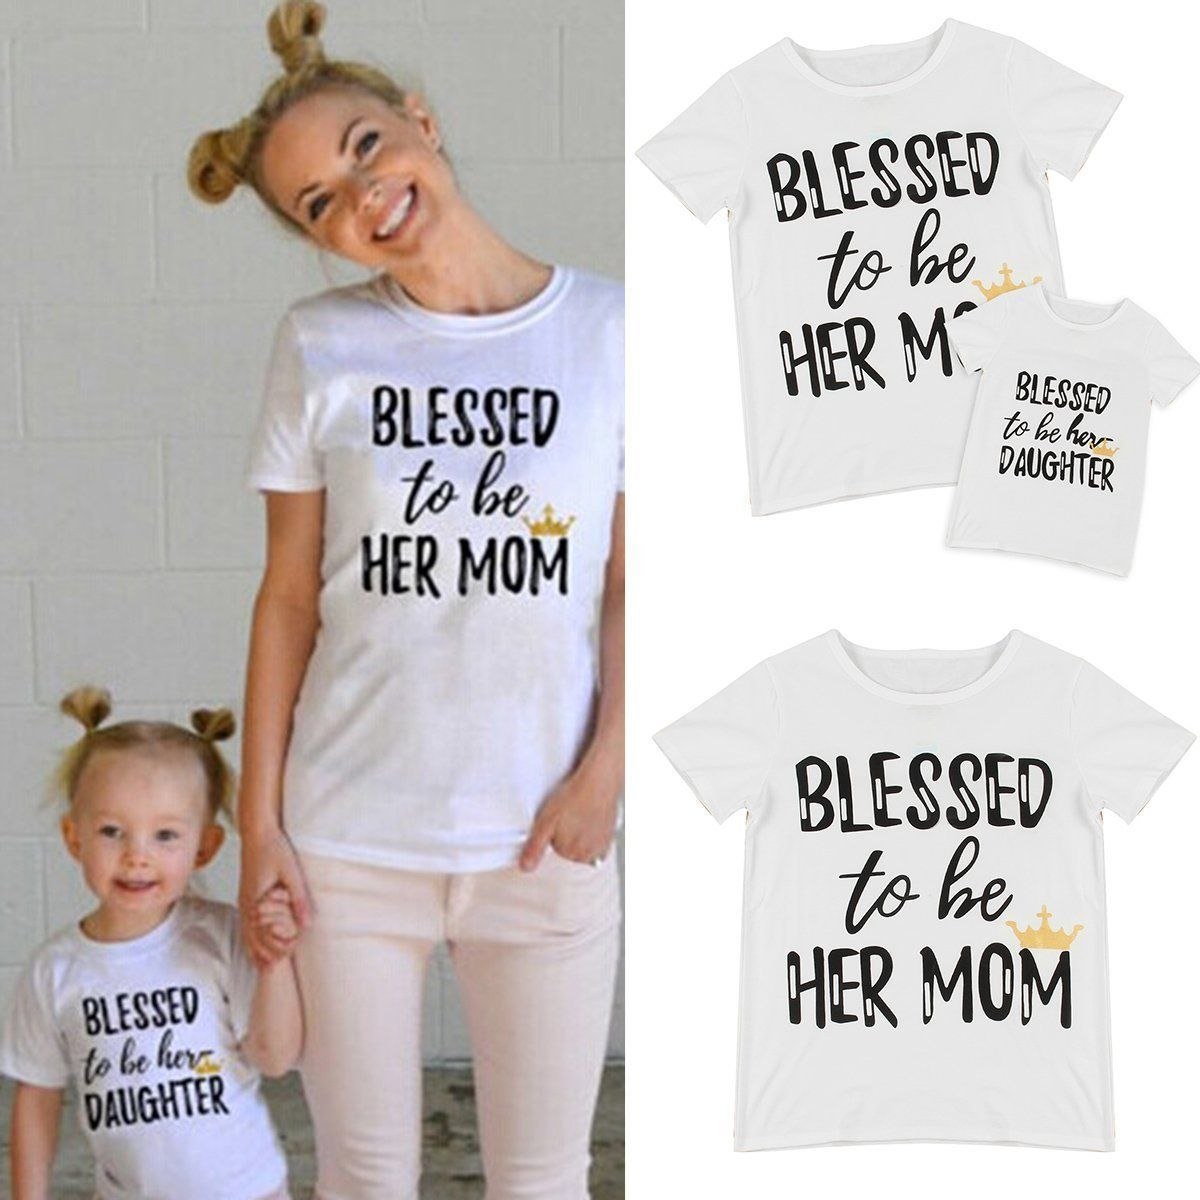 415d5be652ed9 Details about Family T-shirt Mother Daughter Short Sleeve Summer ...